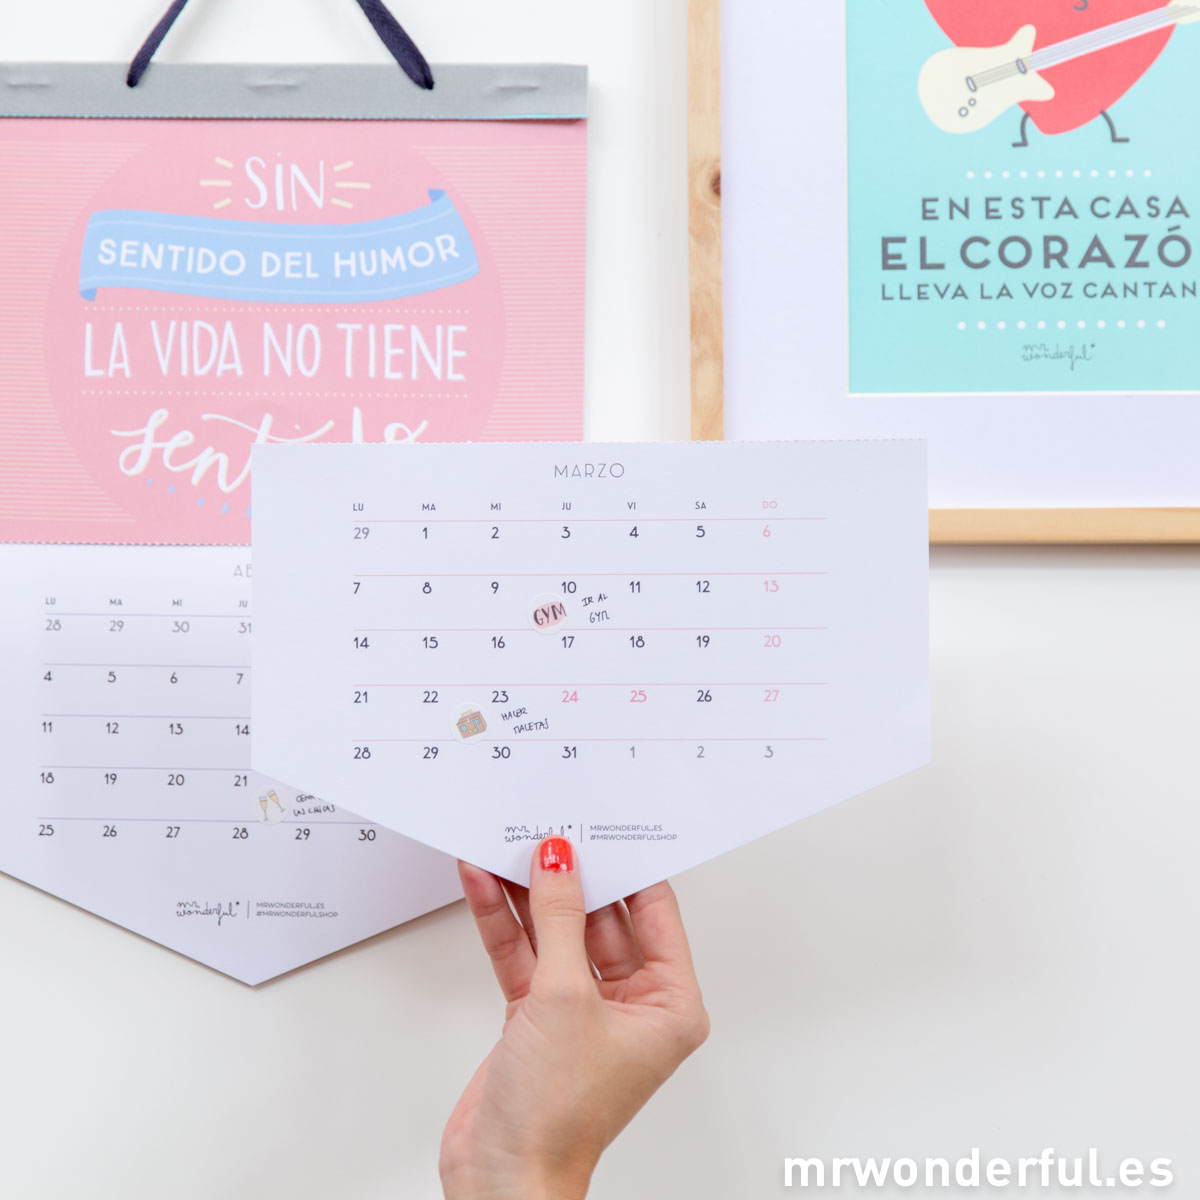 mrwonderful_WOA02929_8436547193646_Calendario-Pared-2015-2016-60